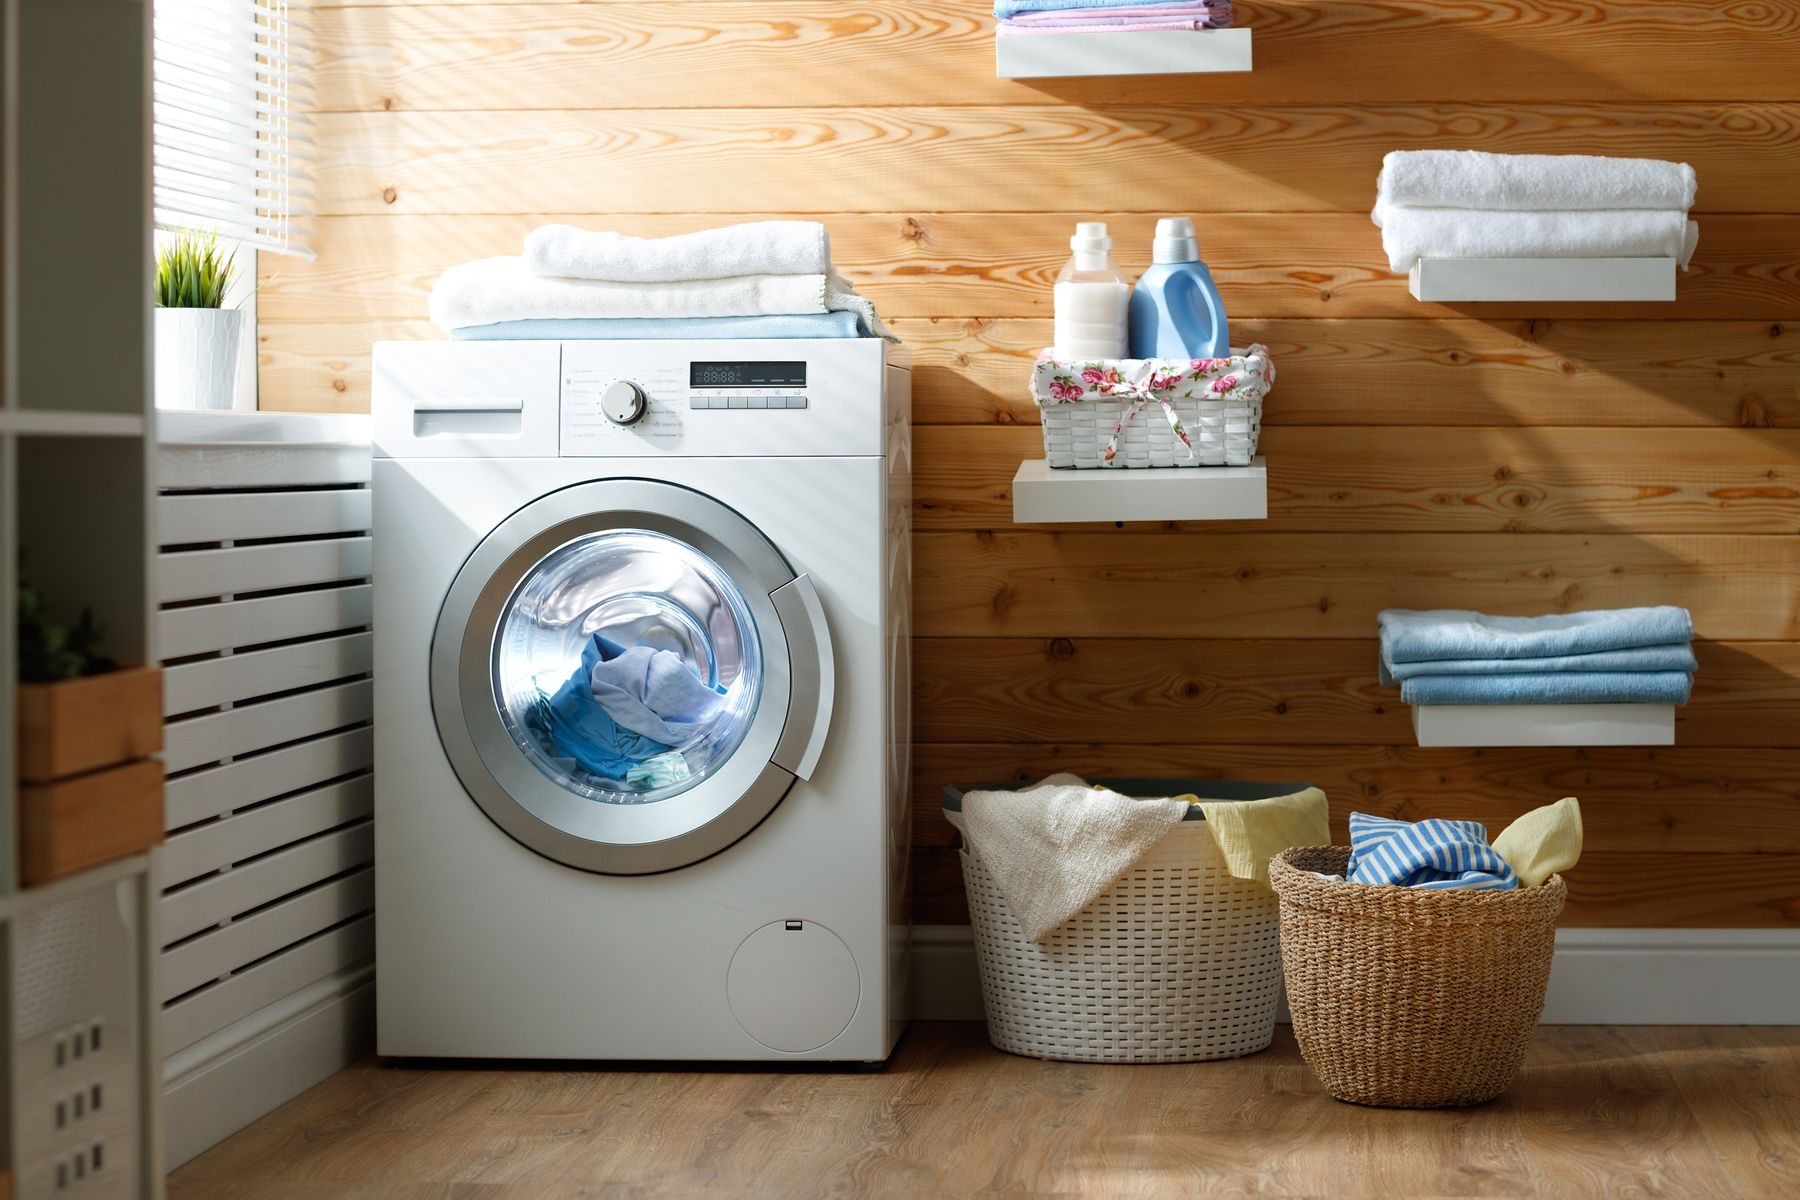 Increase the life of your washing machine